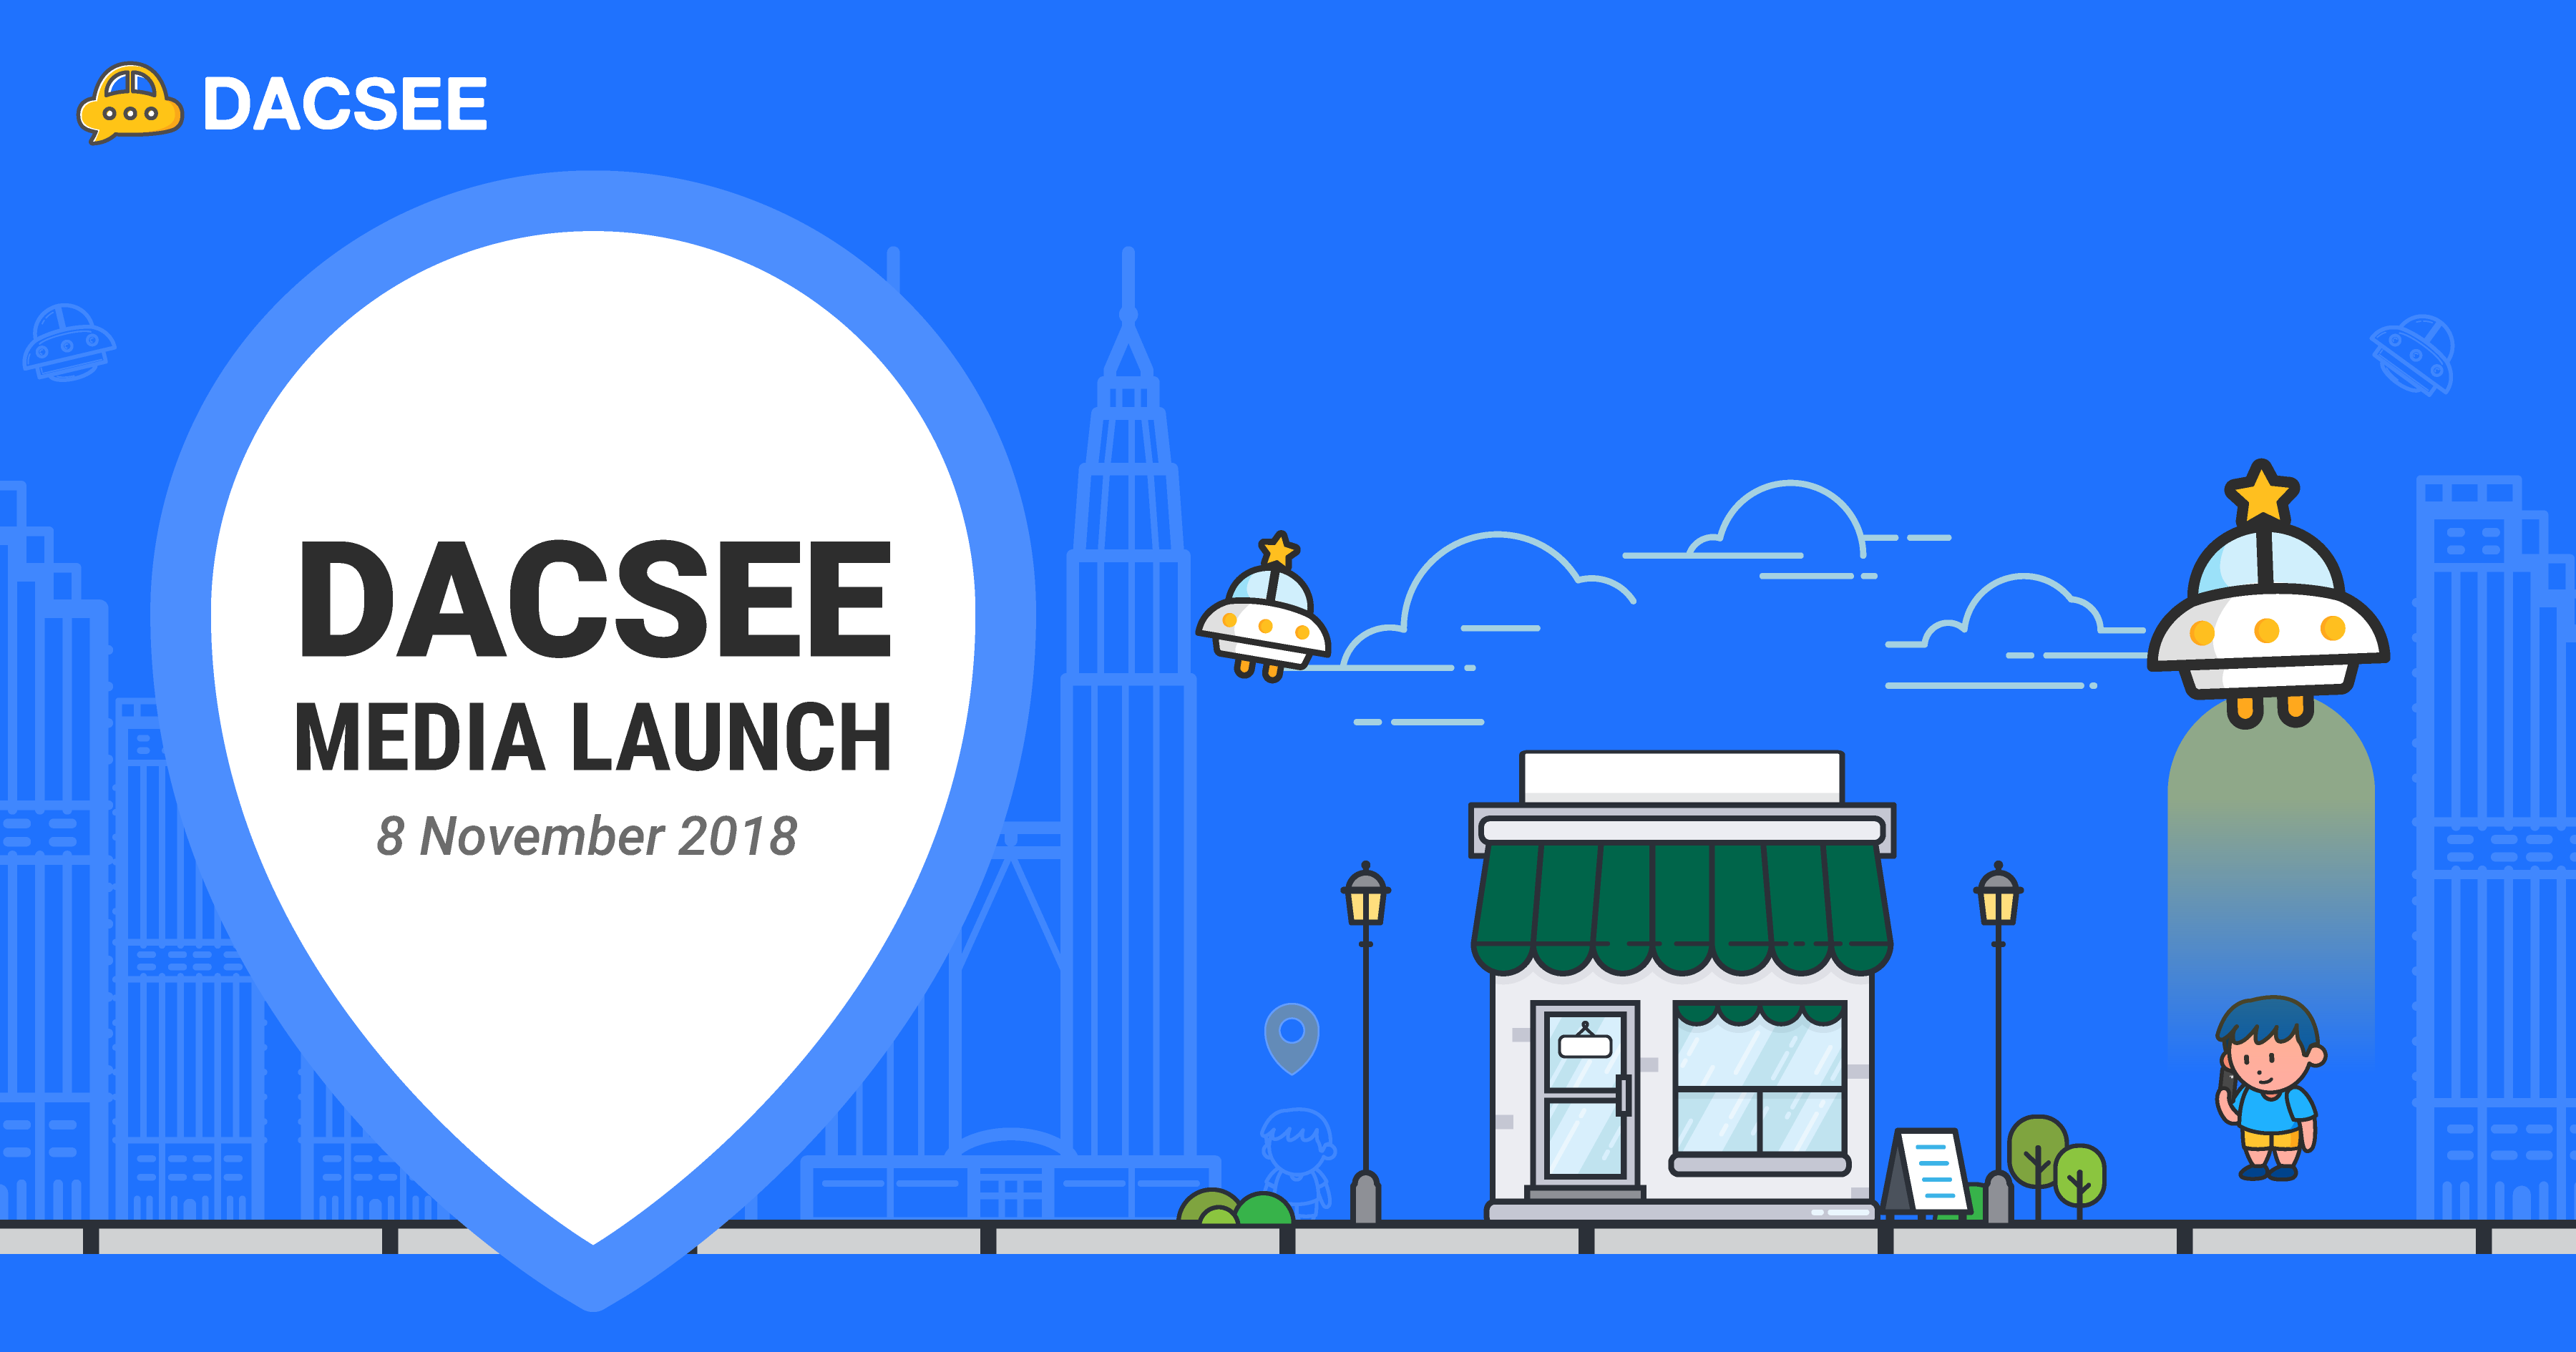 DACSEE Media Launch